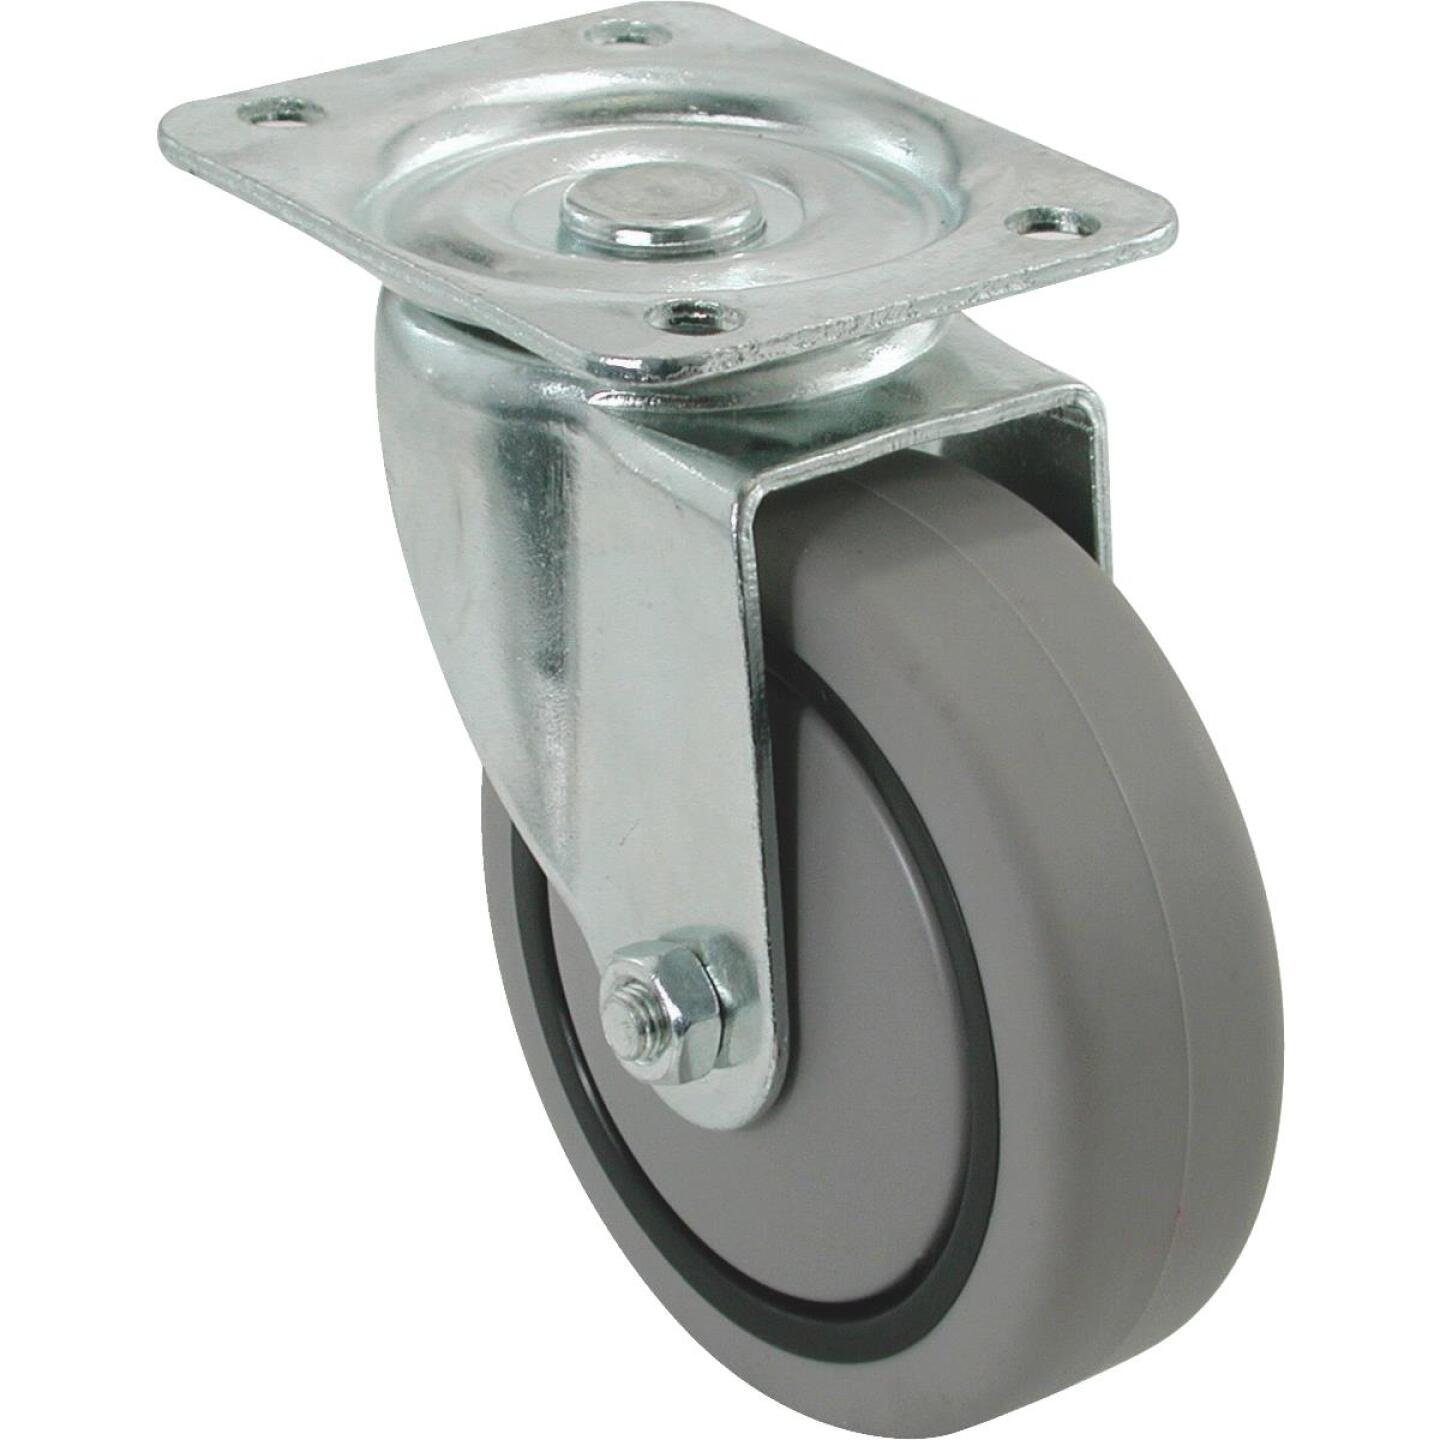 Shepherd 4 In. Thermoplastic Swivel Plate Caster Image 1